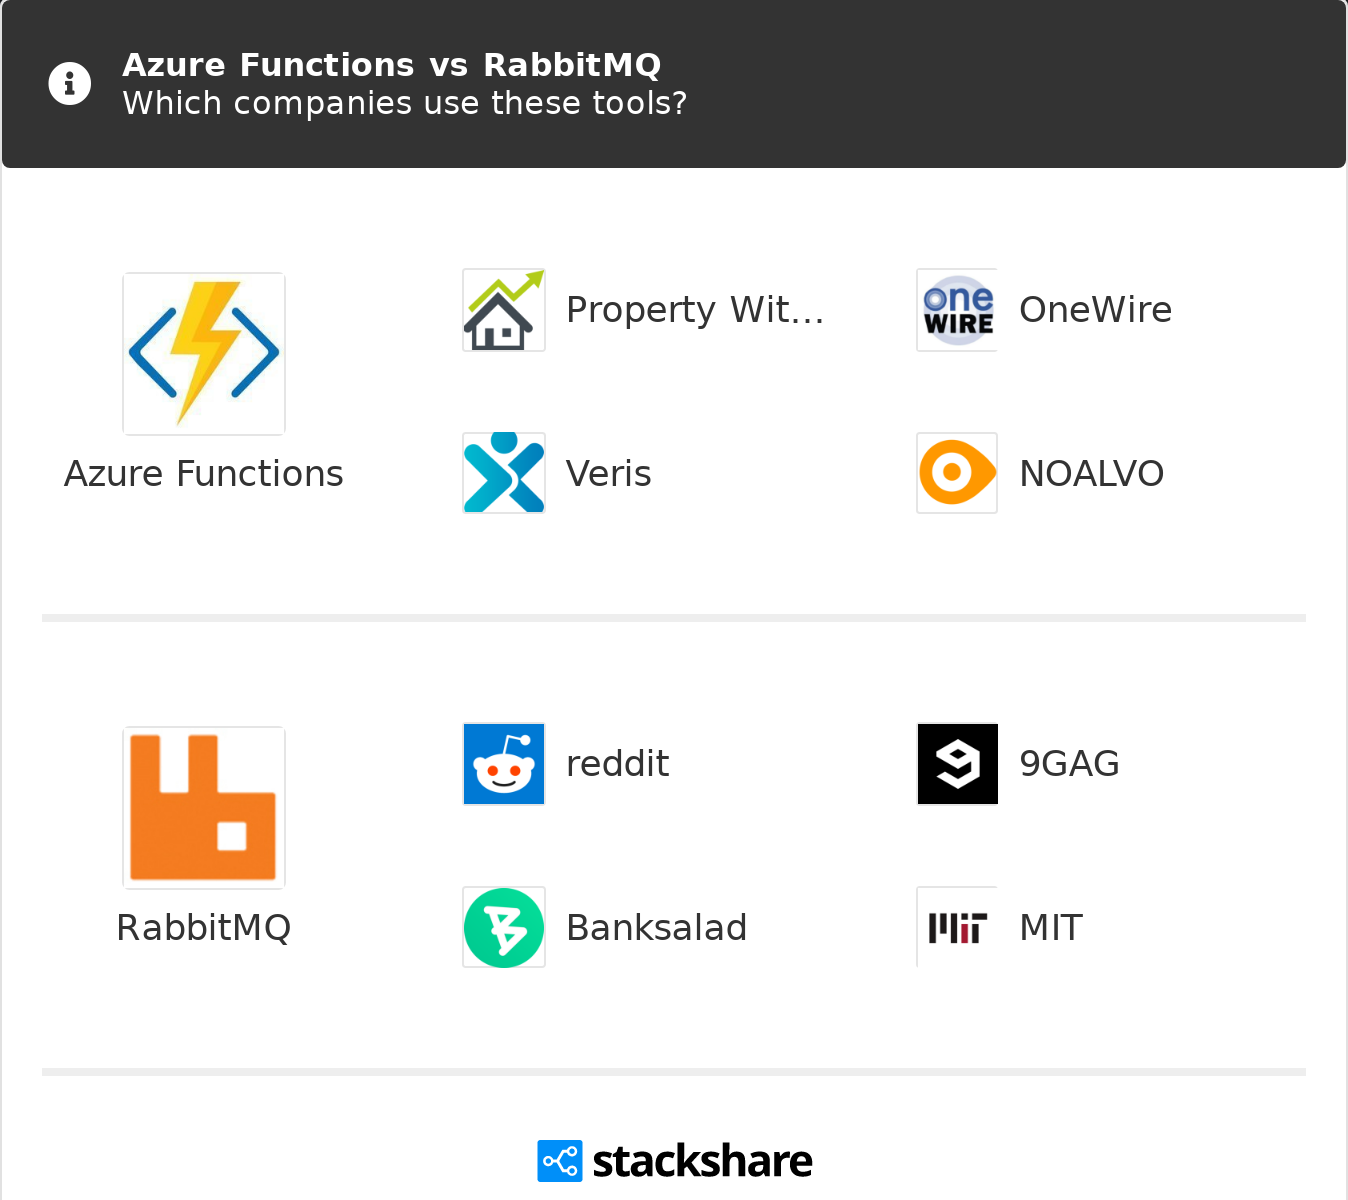 Azure Functions vs RabbitMQ | What are the differences?